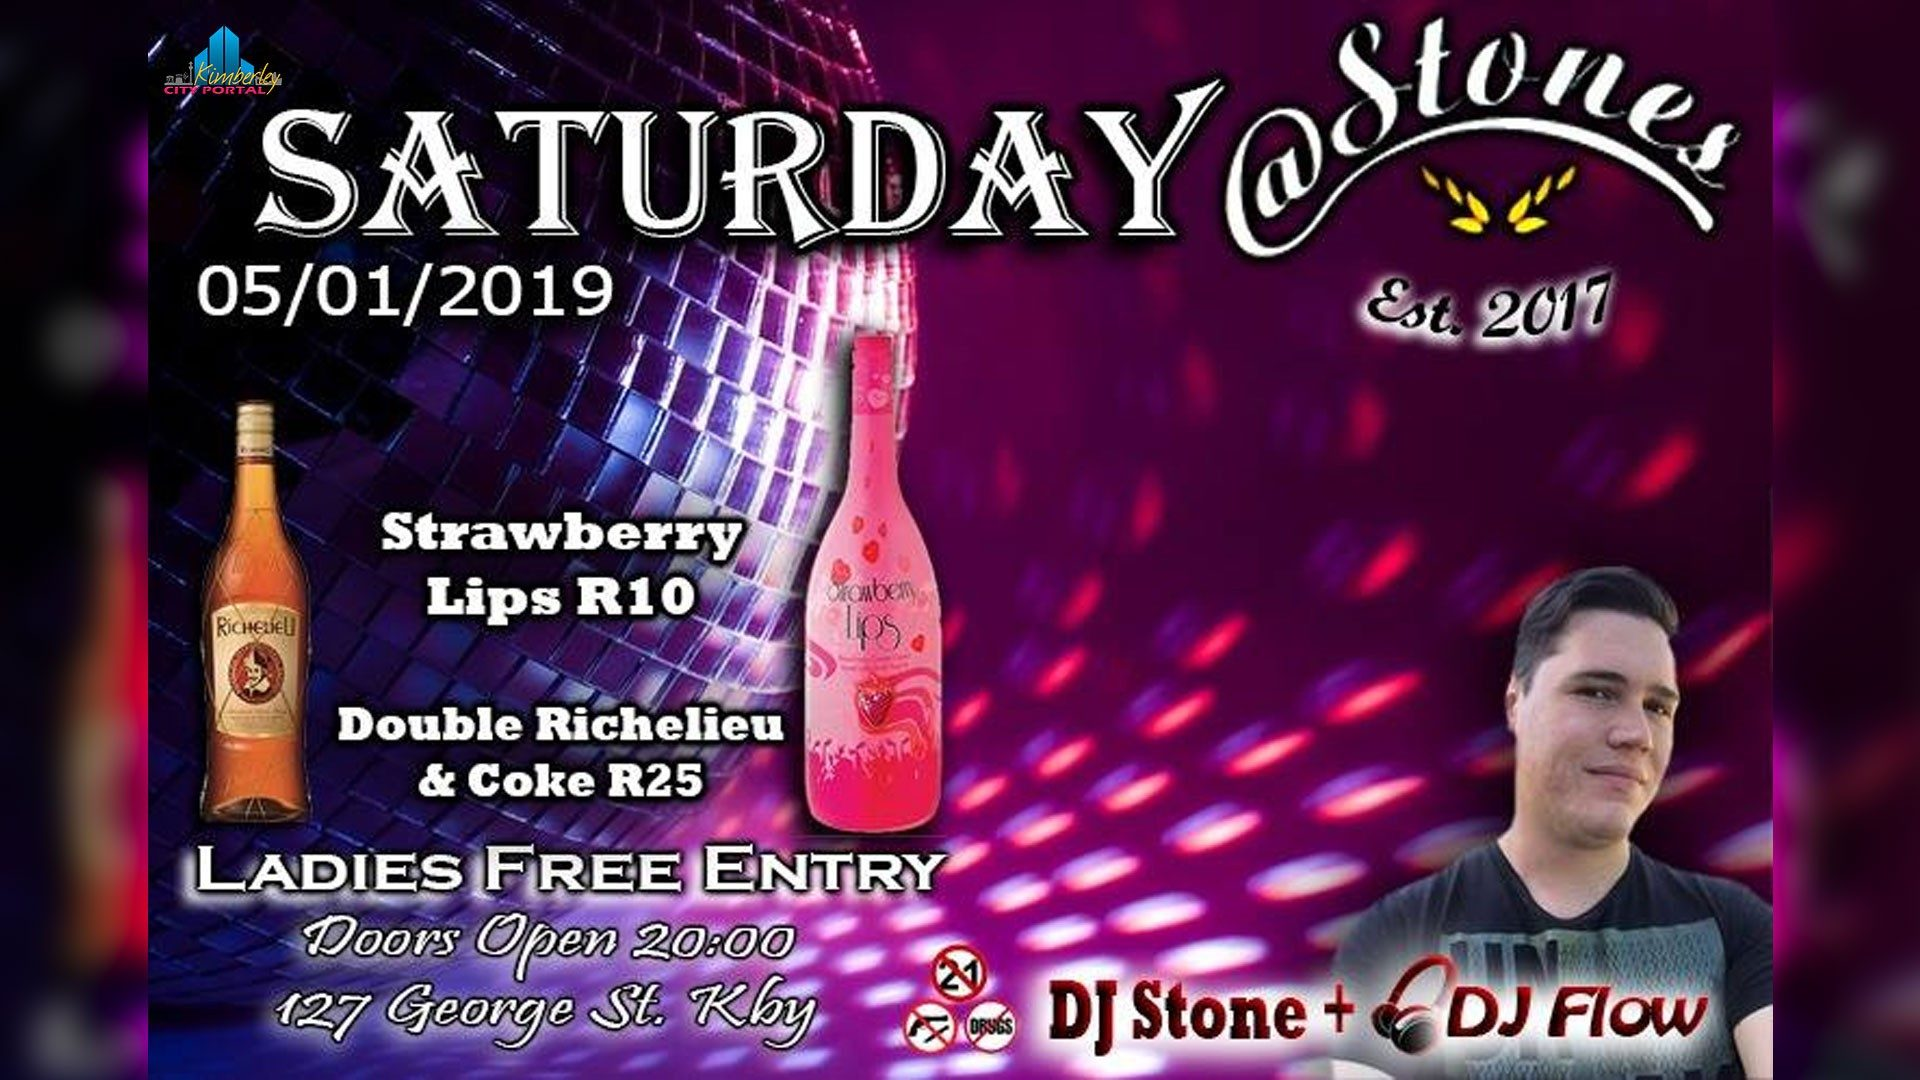 Saturday @ Stones Night Club Kimberley